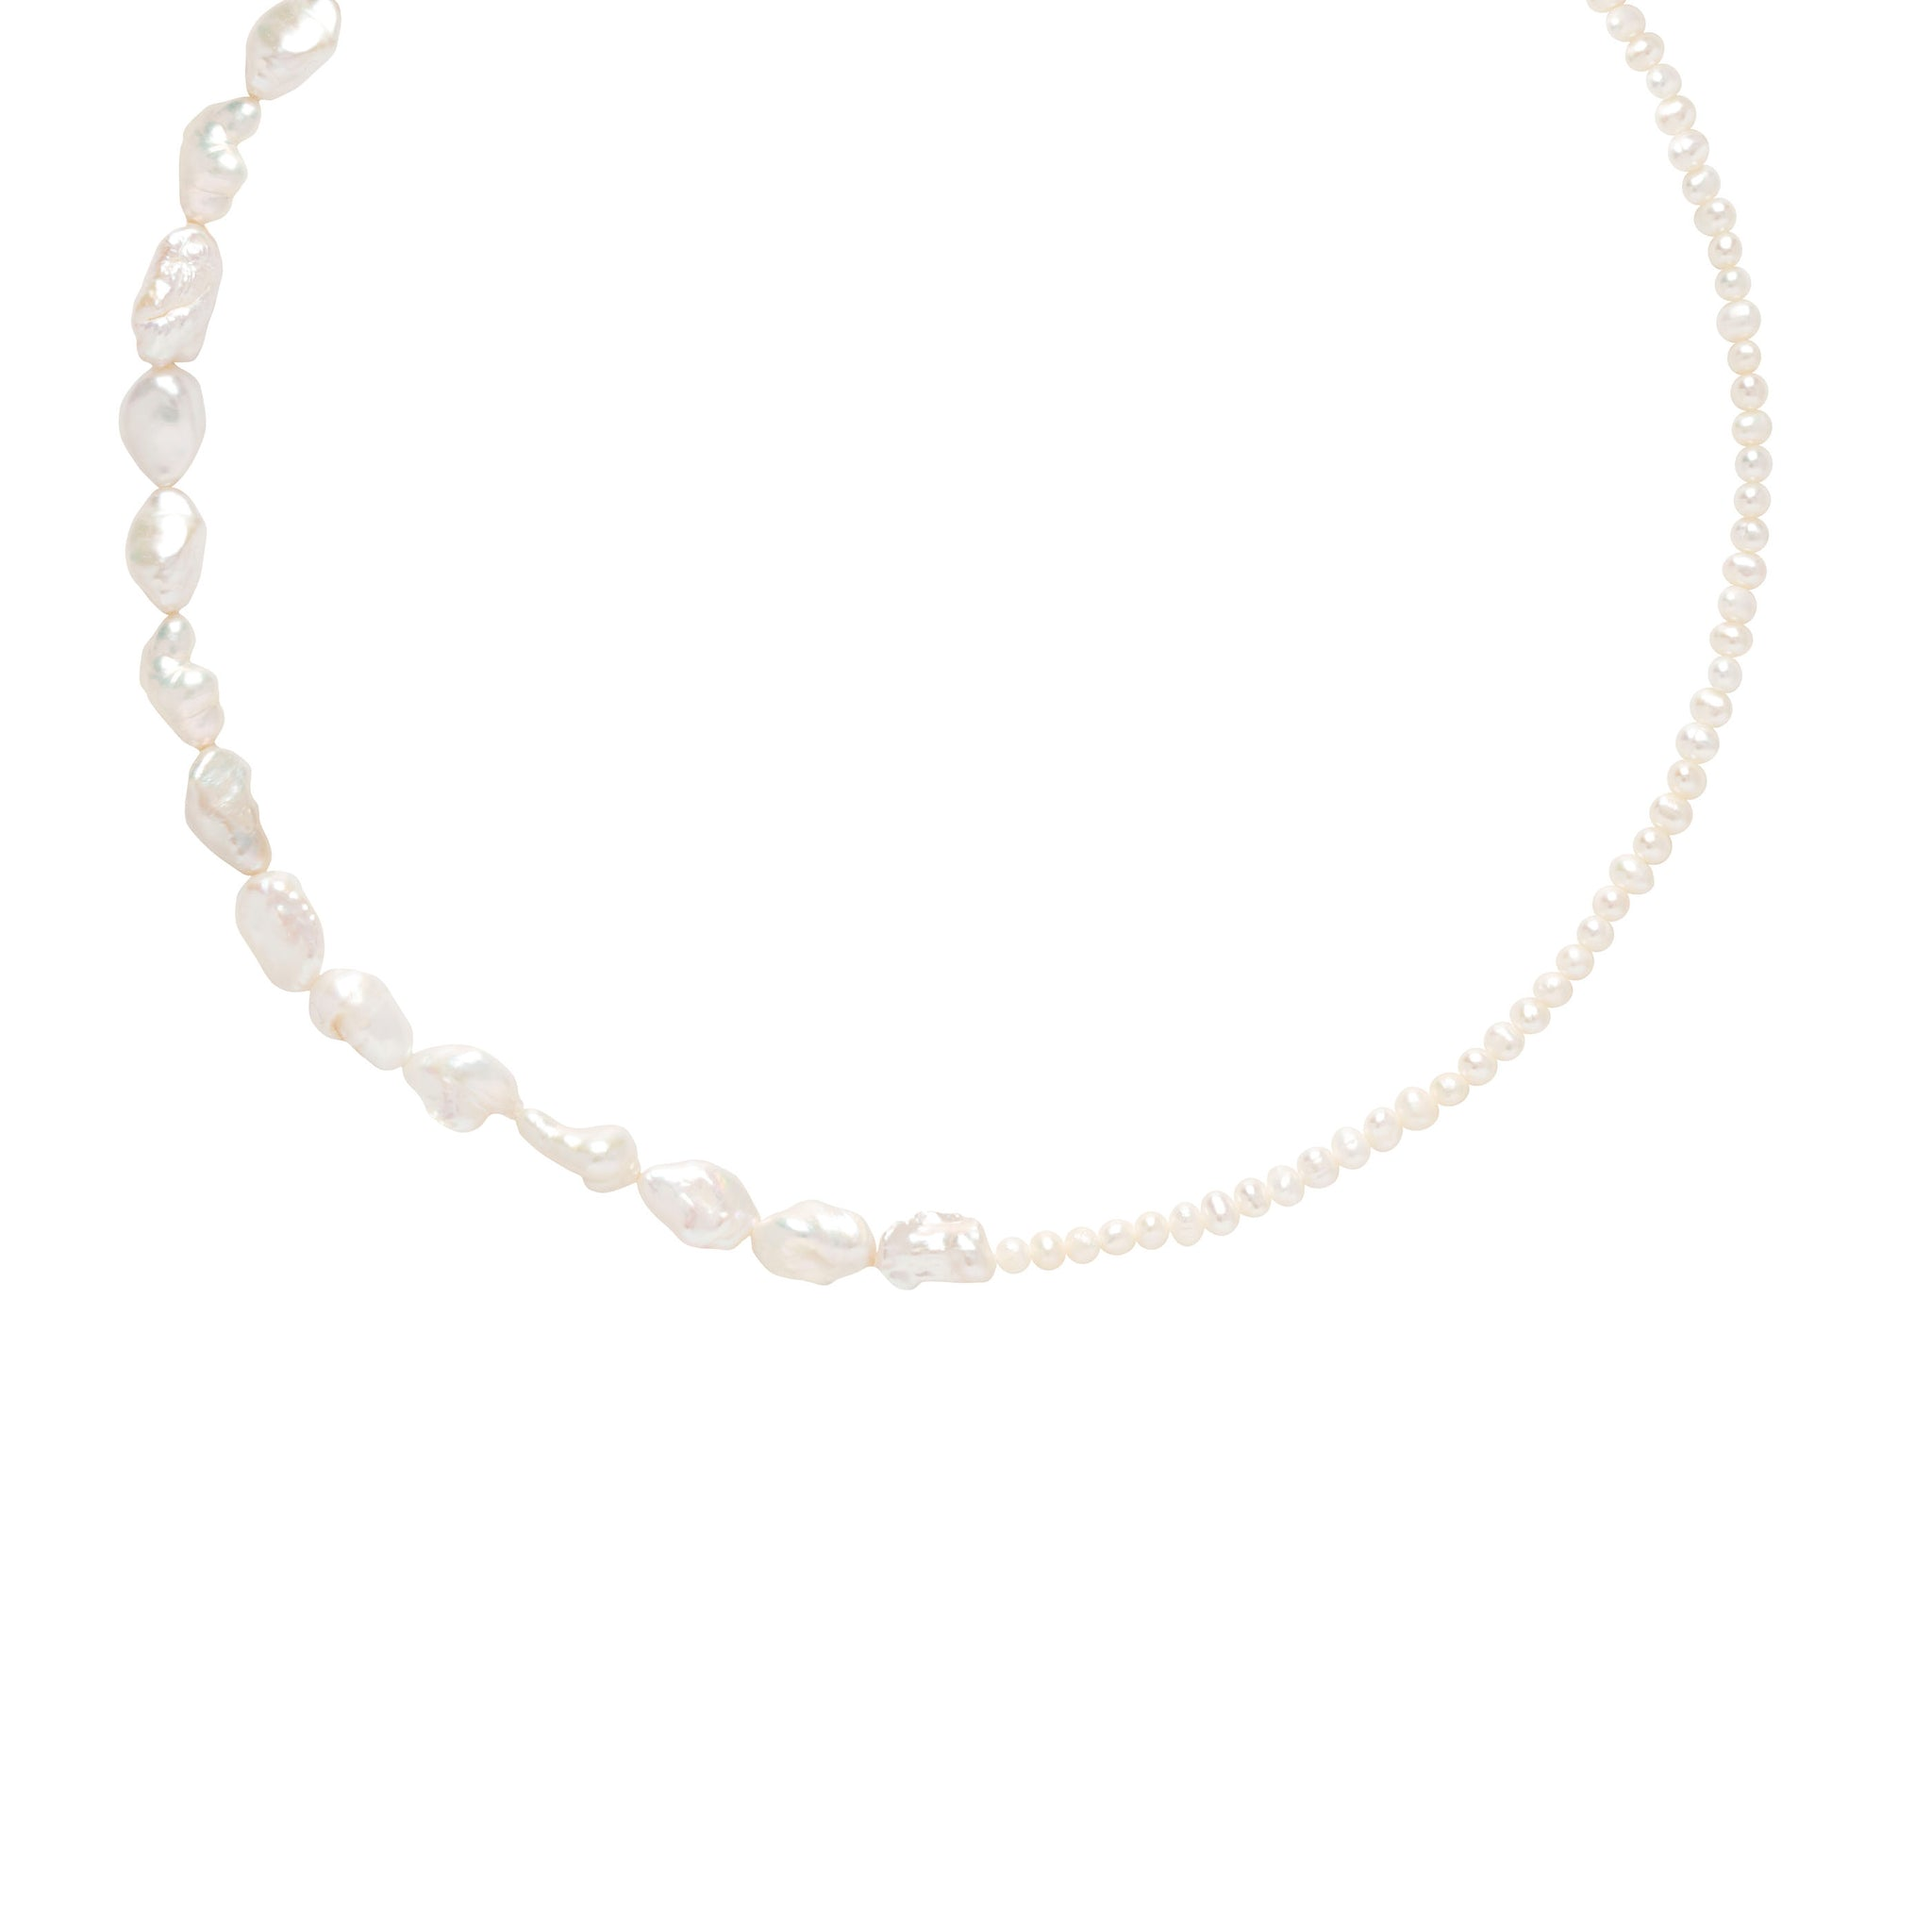 Serenity Pearl Necklace in Silver